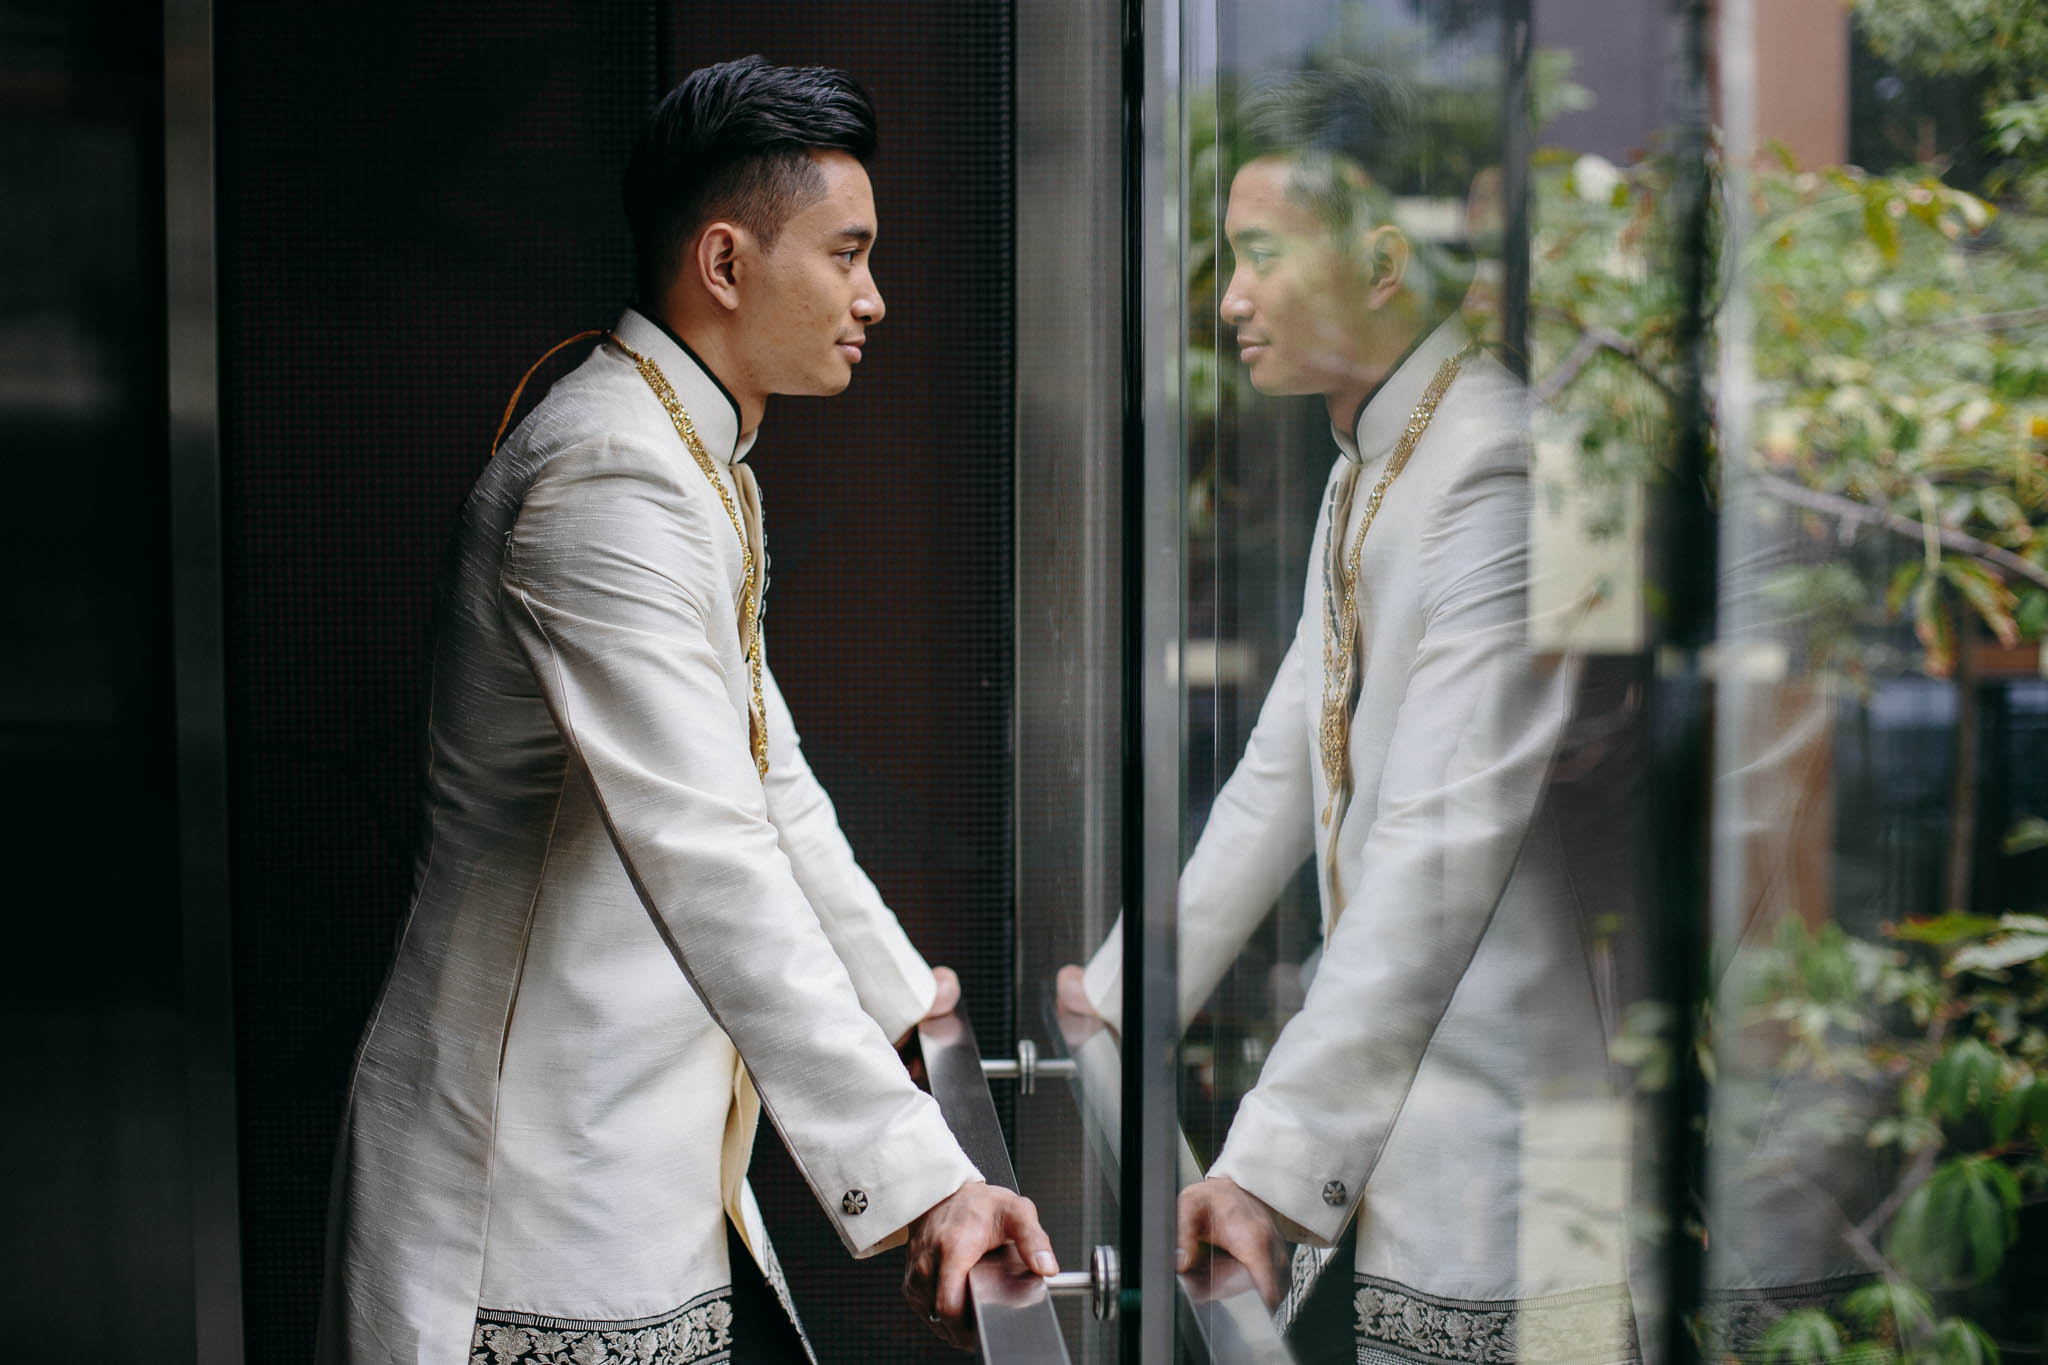 singapore-wedding-photographer-mega-asyraf-69.jpg